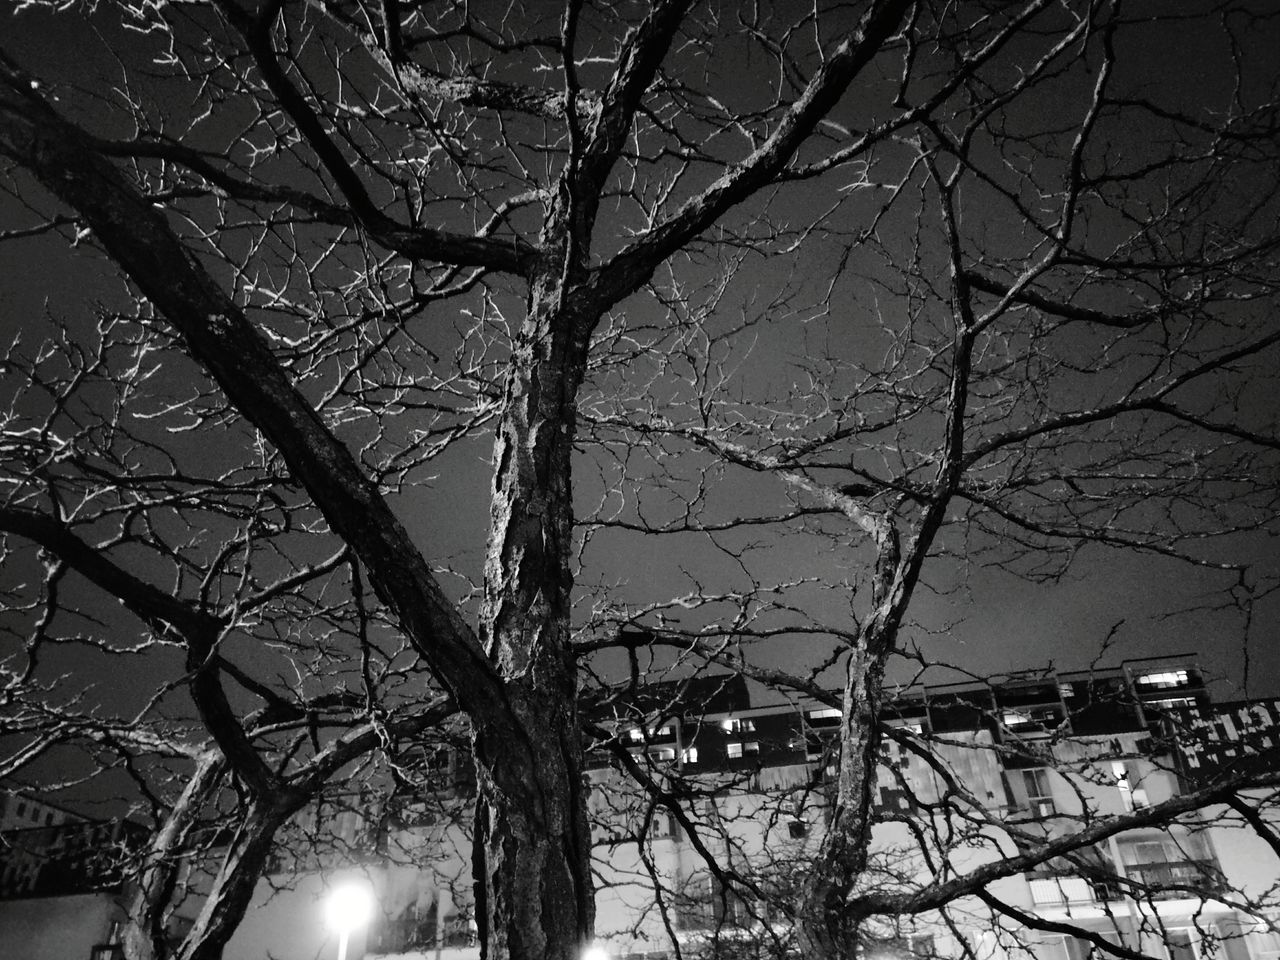 Tree Low Angle View No People Sky Bare Tree Night Black And White